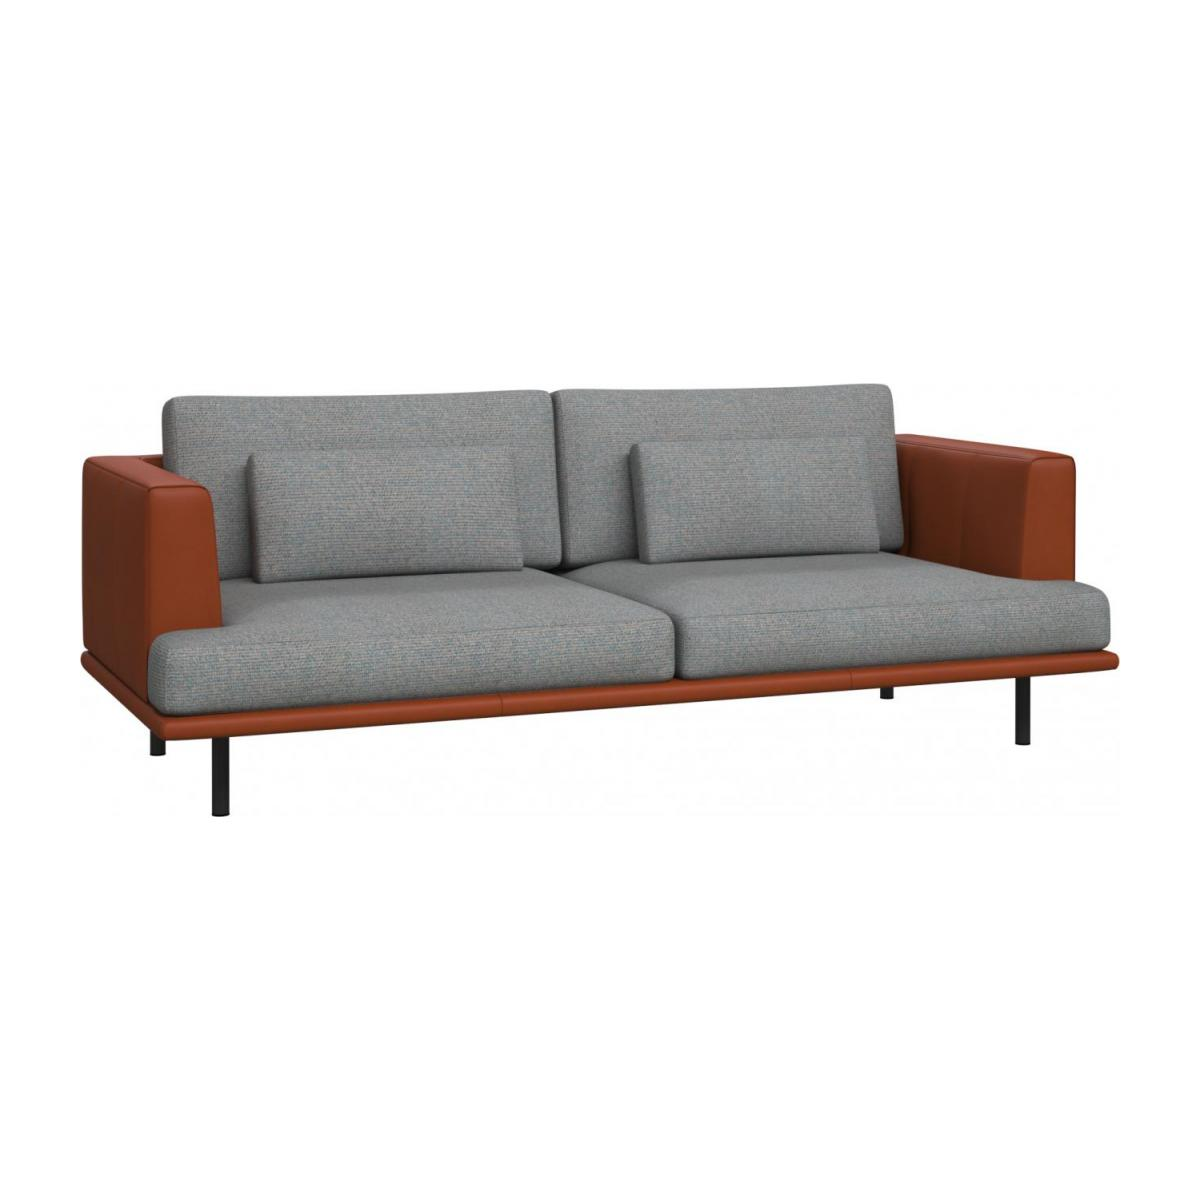 3 seater sofa in Lecce fabric, blue reef with base and armrests in brown leather n°1